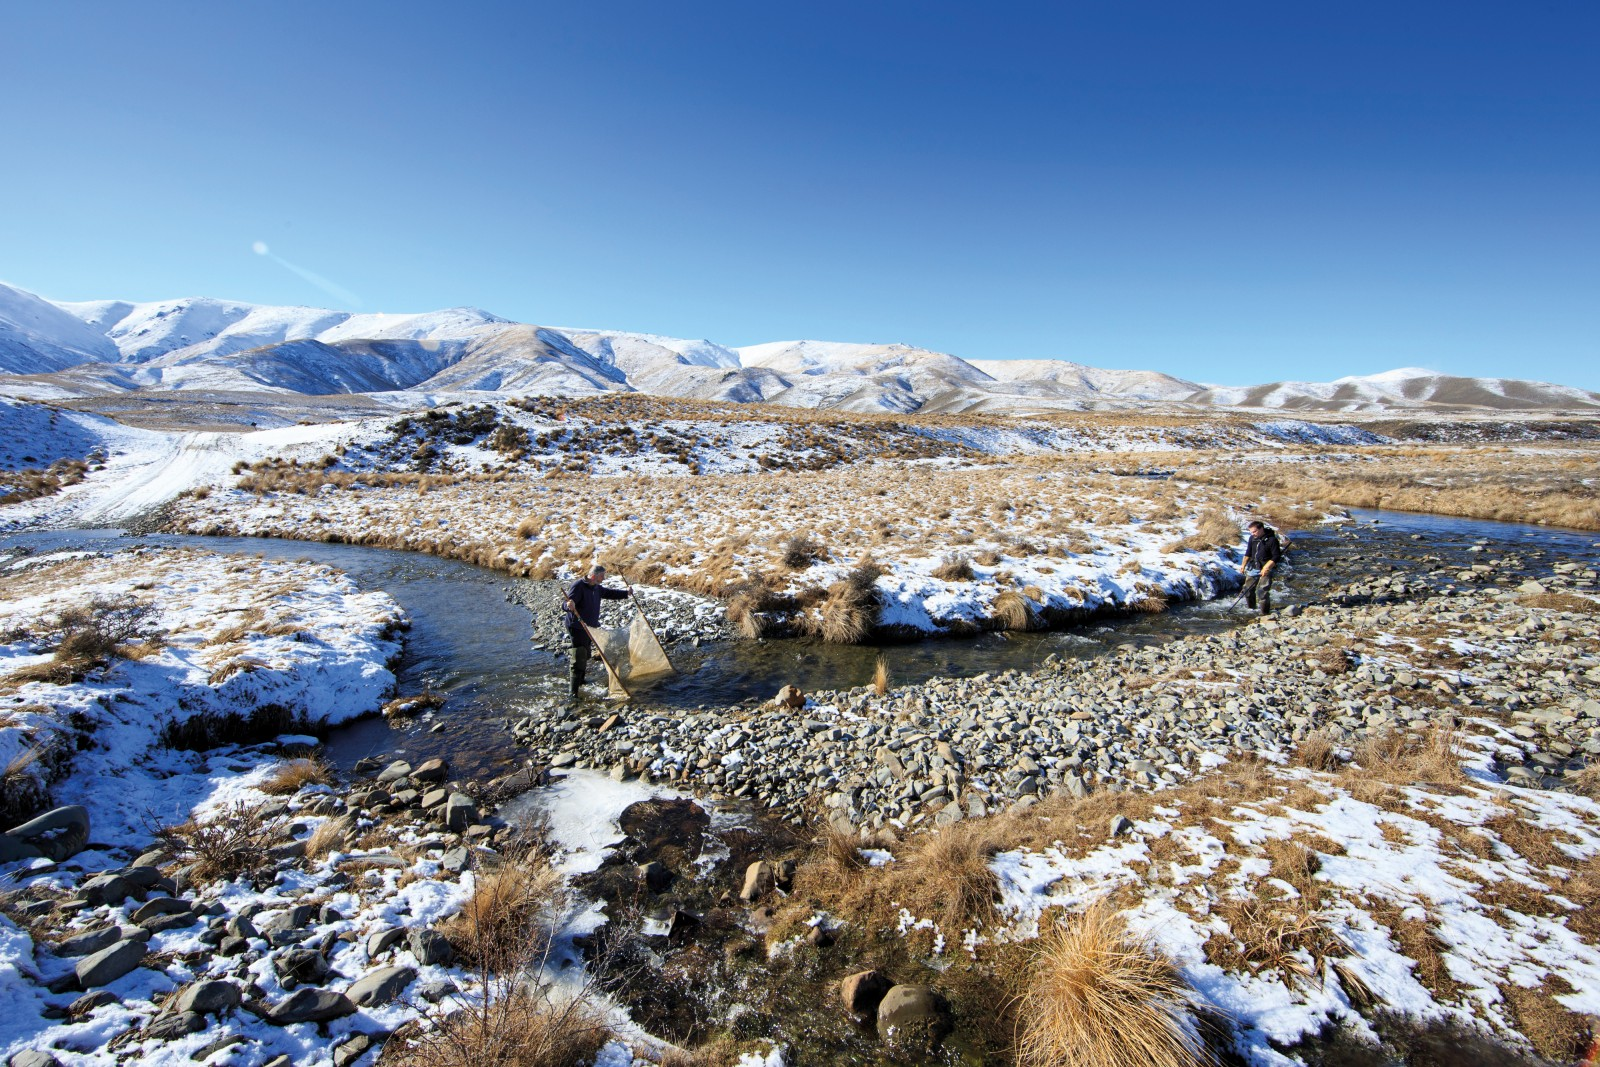 """TURBULENT PAST Photographer Richard Robinson and I meet Dave Craw and Jon Waters on the banks of a cold upland stream on a blue-sky Central Otago day. The wind is taking the snow off the tops, making the mountains appear to smoulder. At first glance they're an unlikely team—Craw a seasoned mineral geologist, Waters a researcher at the helm of some of the most exciting genetic work being done in New Zealand. But theirs is a highly successful collaboration, an elegant example of multi-disciplinary science in action. Movement along the Alpine Fault has caused the rock basement here to buckle and fold, creating a cross-hatch of hills. As the ranges have been thrust up, water has had to find new routes through the landscape. The stream we are standing in has been 'captured'. Craw shows me where a low hill has blocked its path and how the stream has subsequently cut a new channel to join up with another river to the west. Where a stream has been split in this way, the genetics of the fish on either side have also flowed apart, eventually resulting in two species. By analysing the genetics of neighbouring populations, Waters is able to calibrate the rate of genetic divergence and match it with Craw's geological evidence to build up a detailed picture of how this landscape has changed over time—biology and geology interacting to arrive at a greater understanding of the processes that have shaped this country. """"We've got it pretty well sorted now,"""" Craw tells me. """"When Jon's got a fish problem, he comes to me and I try to come up with a plausible story, and vice versa."""" As we clamber up the jumbled riverbed, Craw picks up a stone of richly patterned greywacke conglomerate. He turns it over to examine the communities of insect larvae living on the bottom, but it's the rock itself that interests him most; it was a key piece of evidence in his and Waters' most recent publication. That research compared the genetics of a species found in the Taieri River, Galaxias depressiceps, """